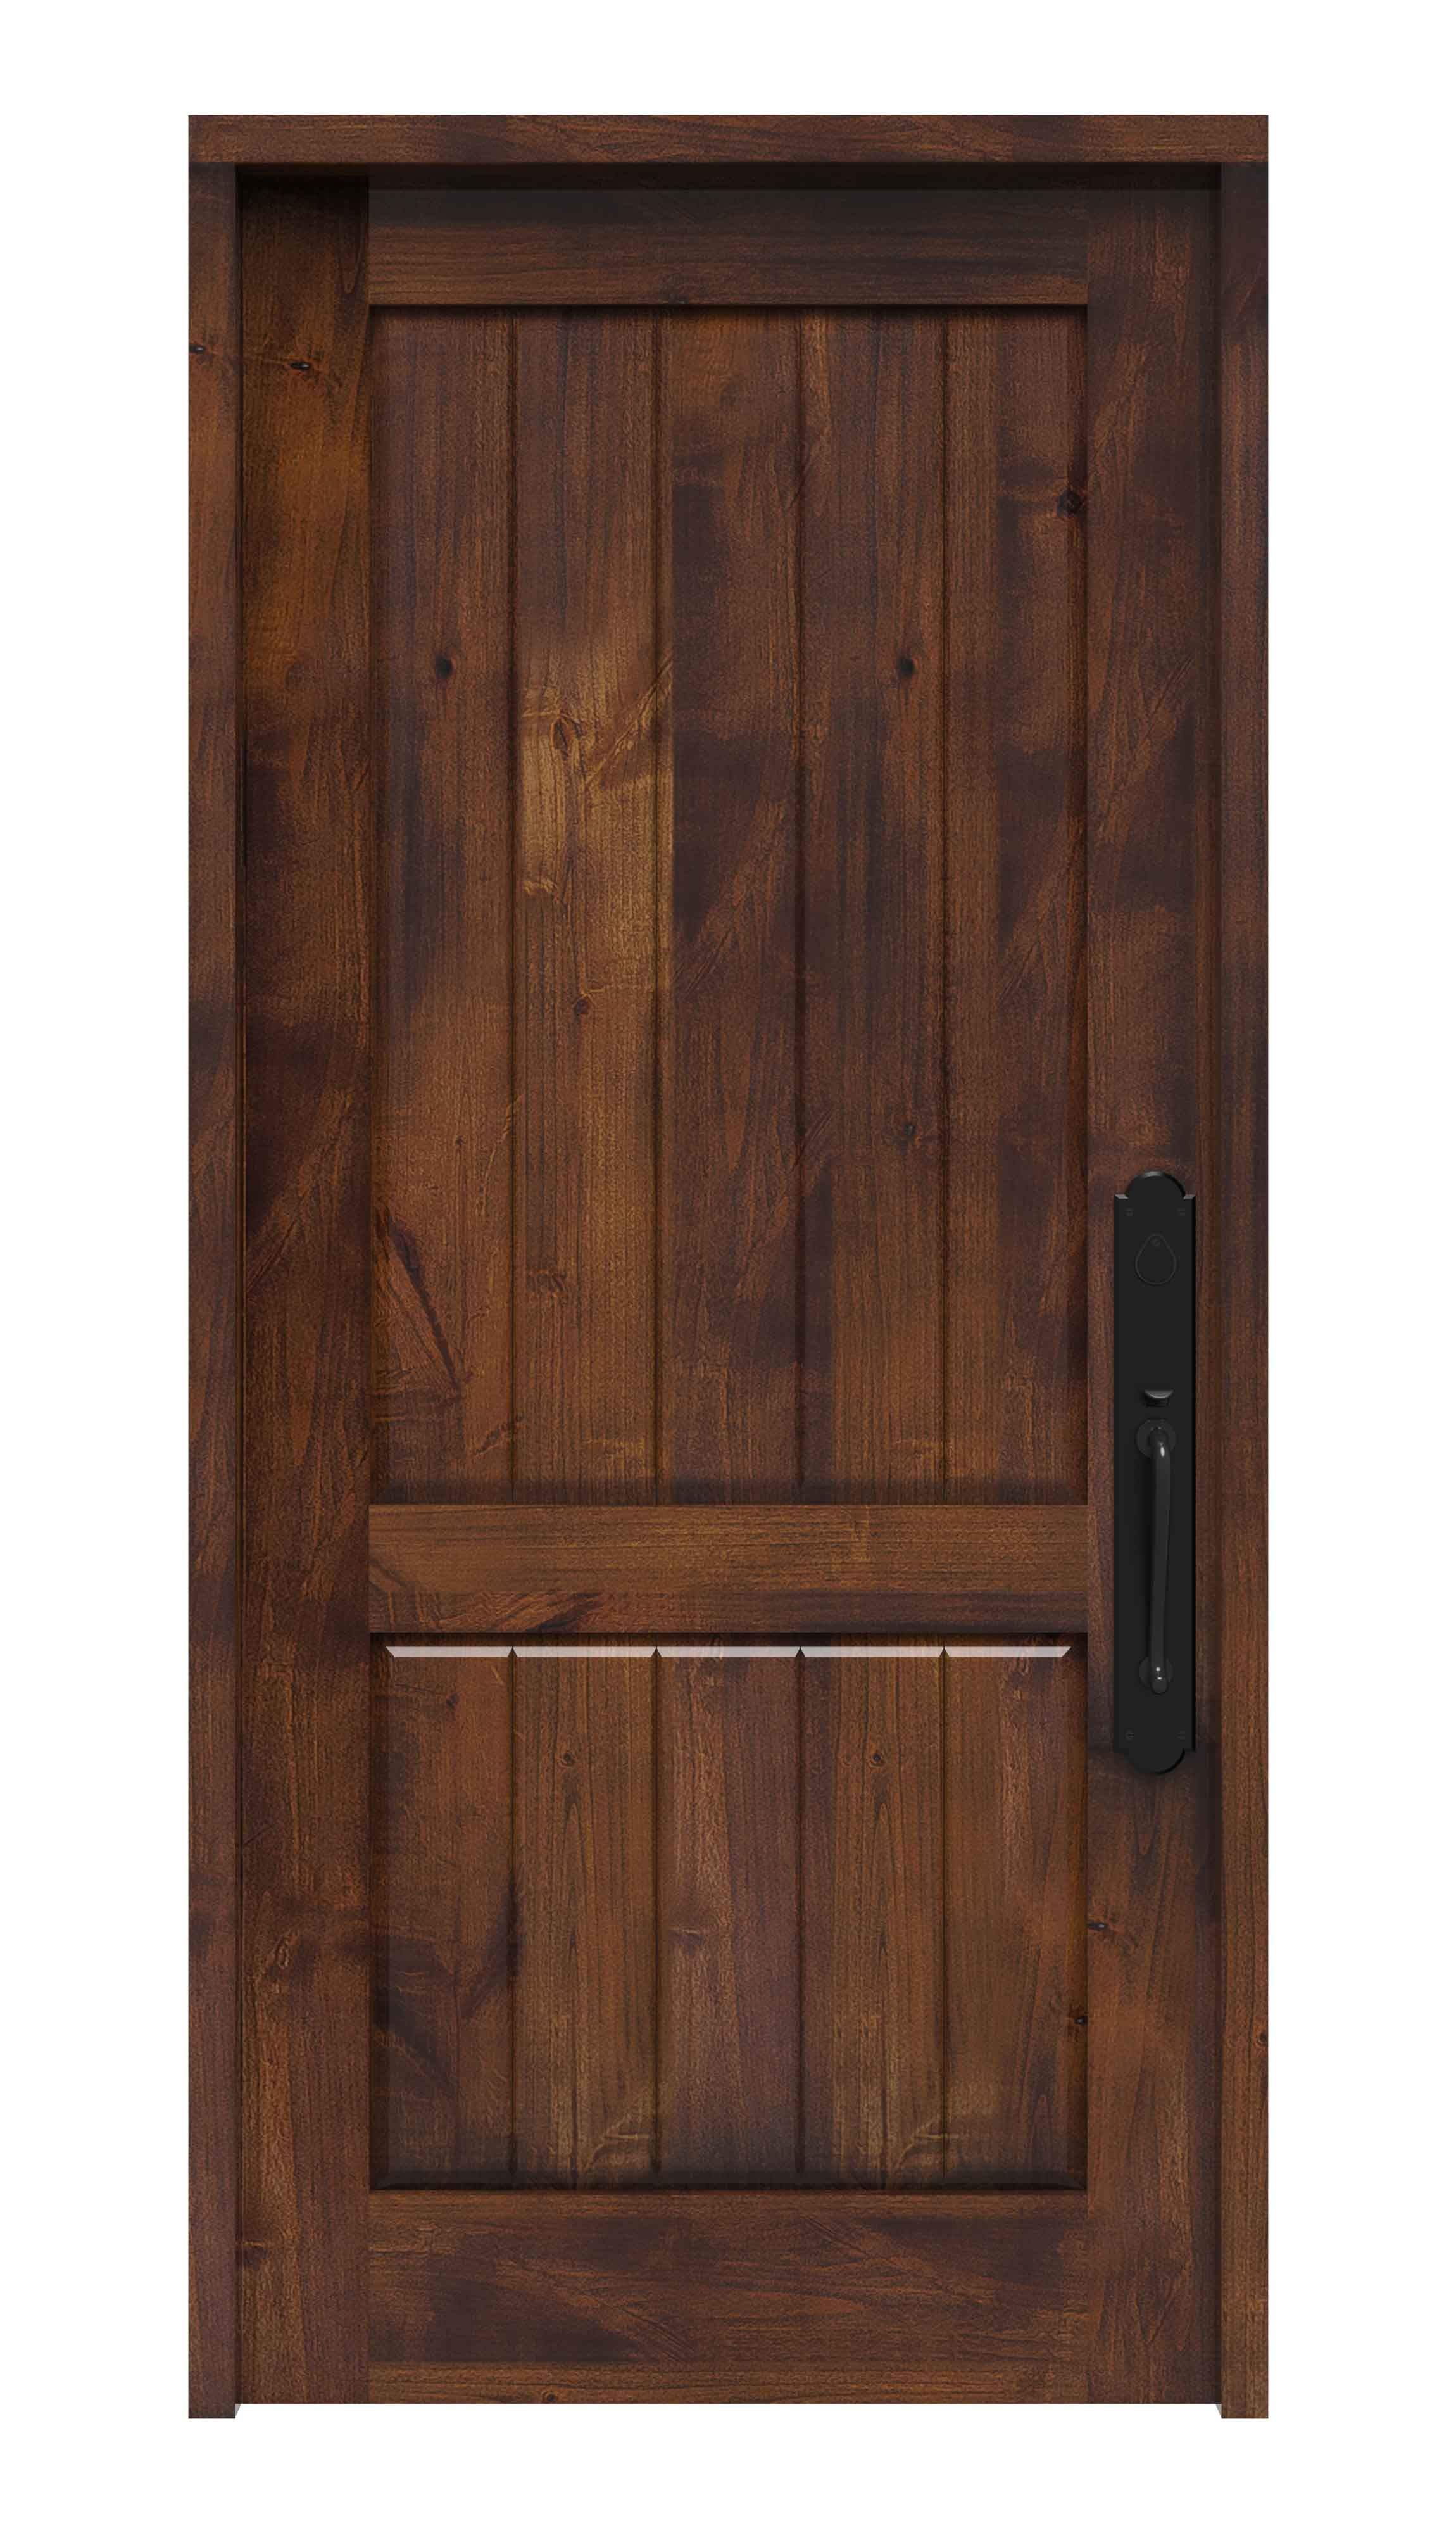 Shop For Rustic Front Doors To Add Character To Your Home Our